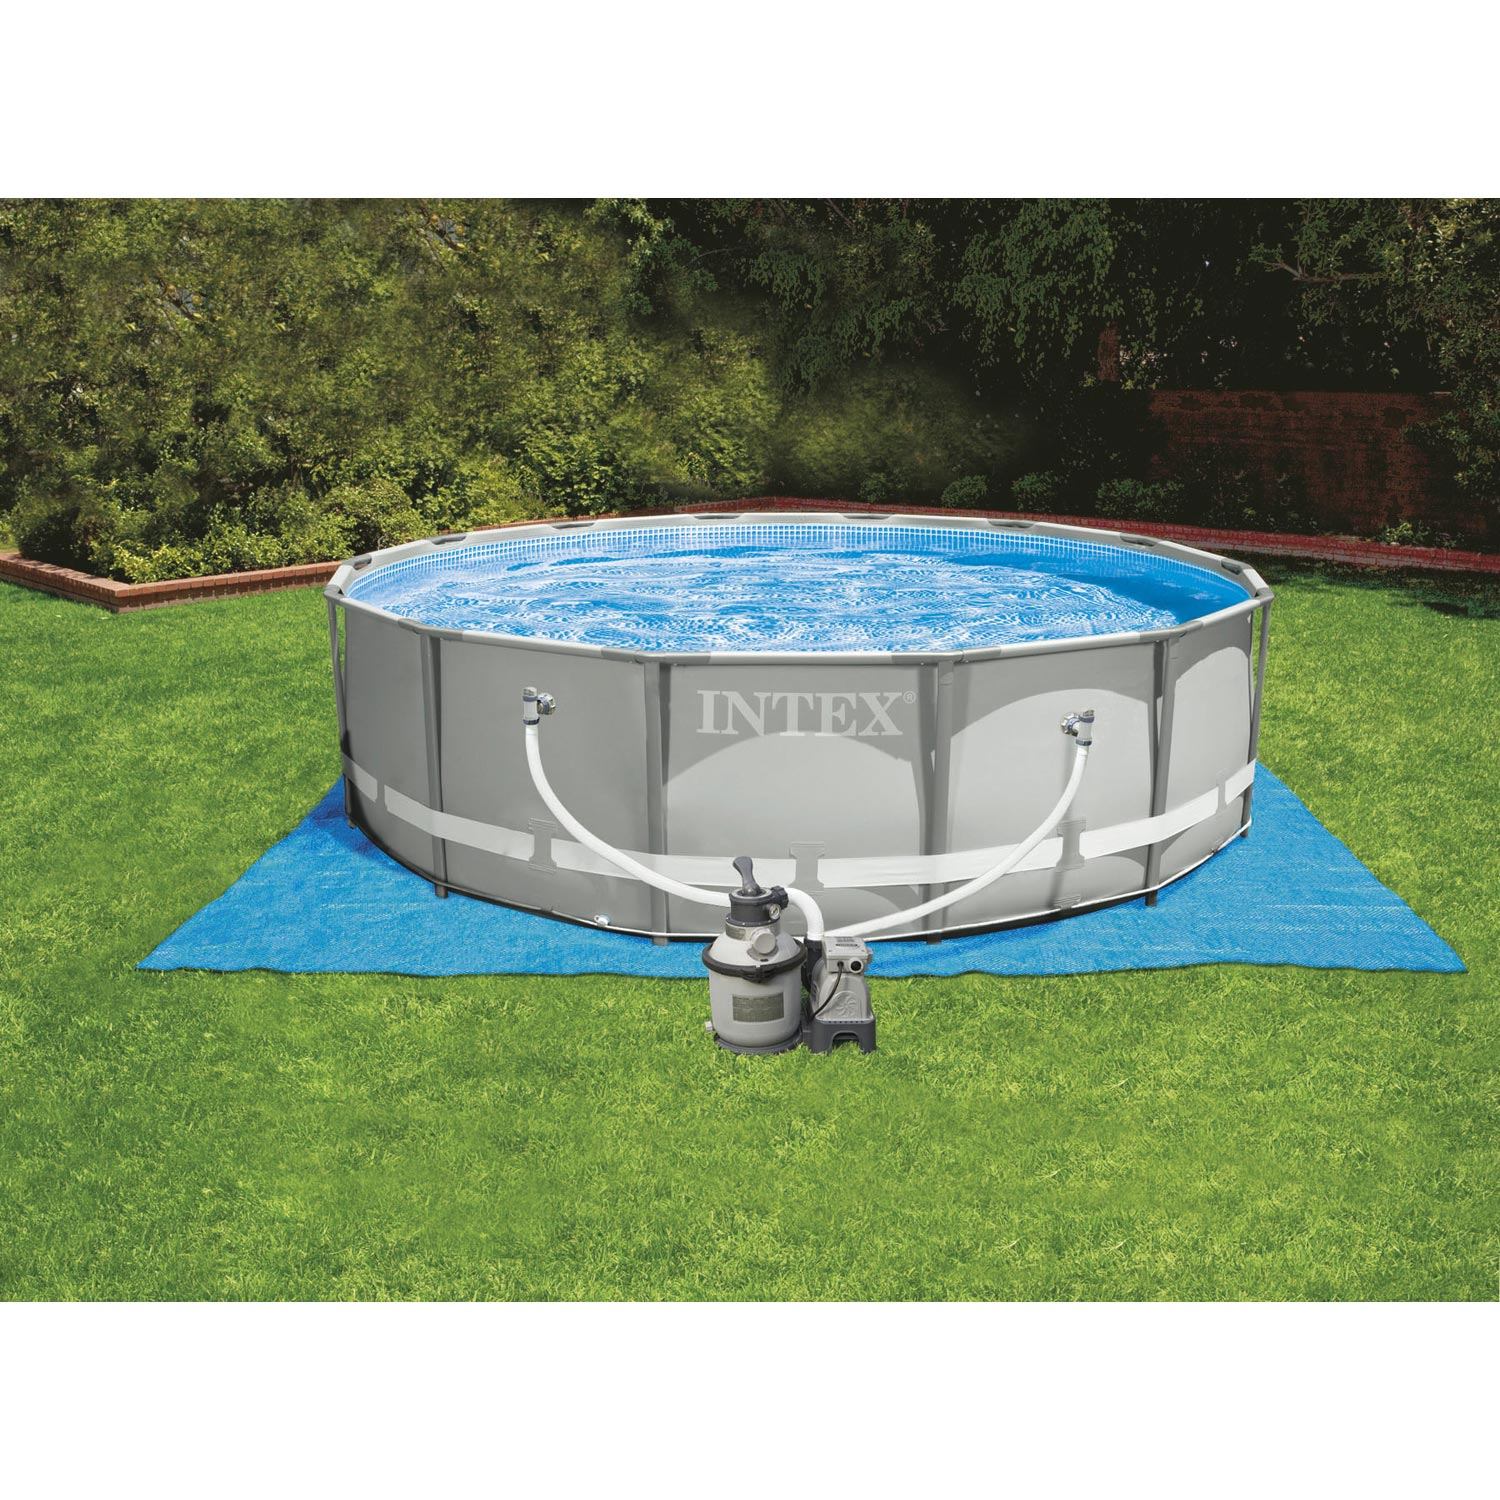 Piscine hors sol autoportante tubulaire ultra frame intex for Securiser piscine hors sol